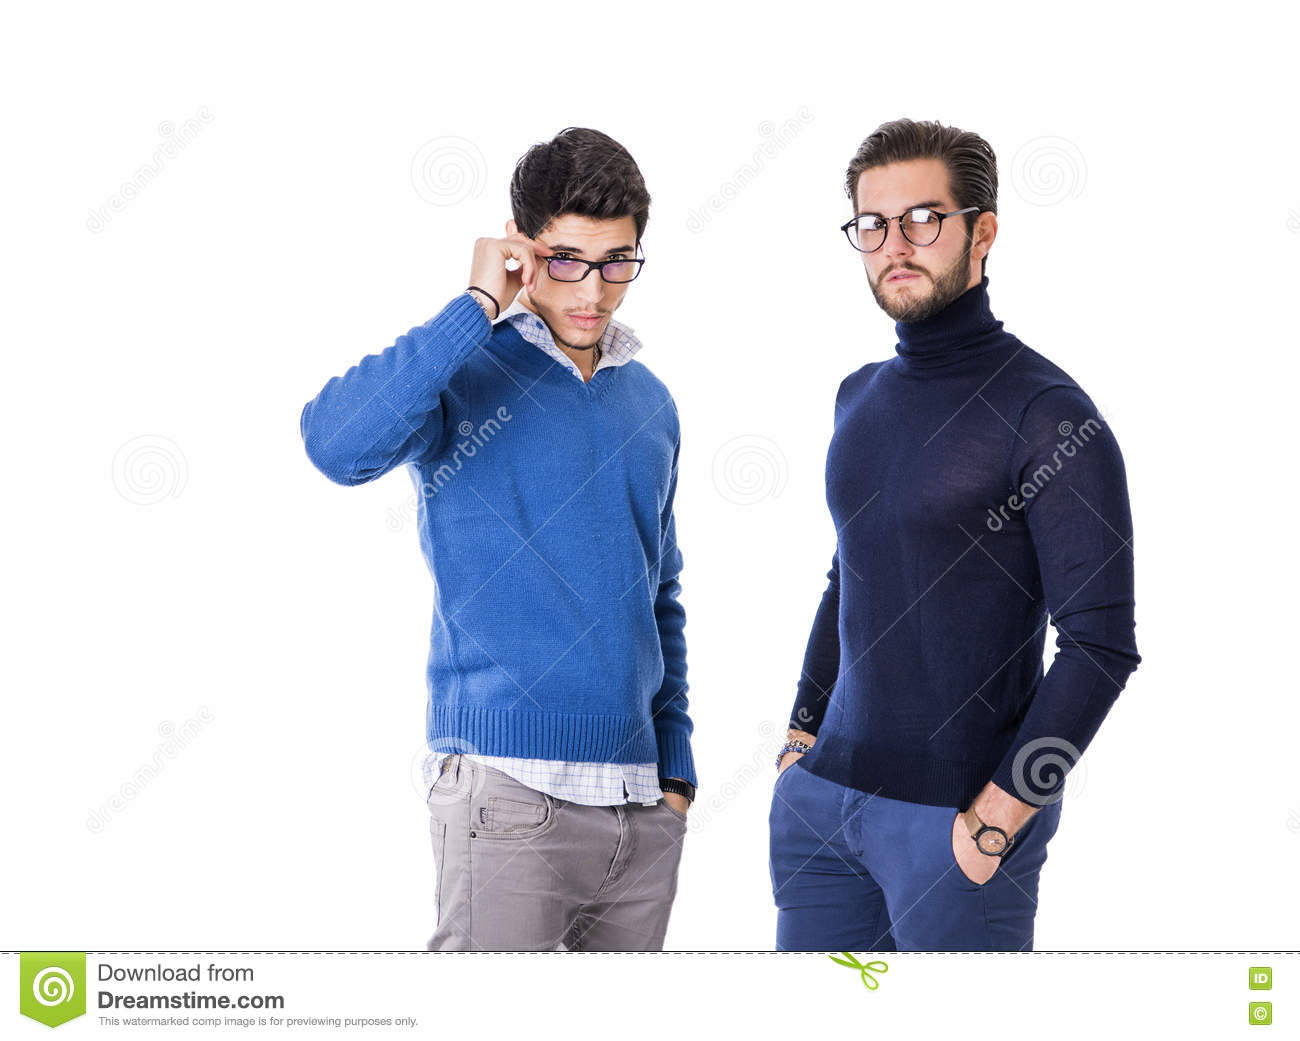 Stylish Clothes Two Good Looking Men In Stylish Clothes Stock Image Image Of